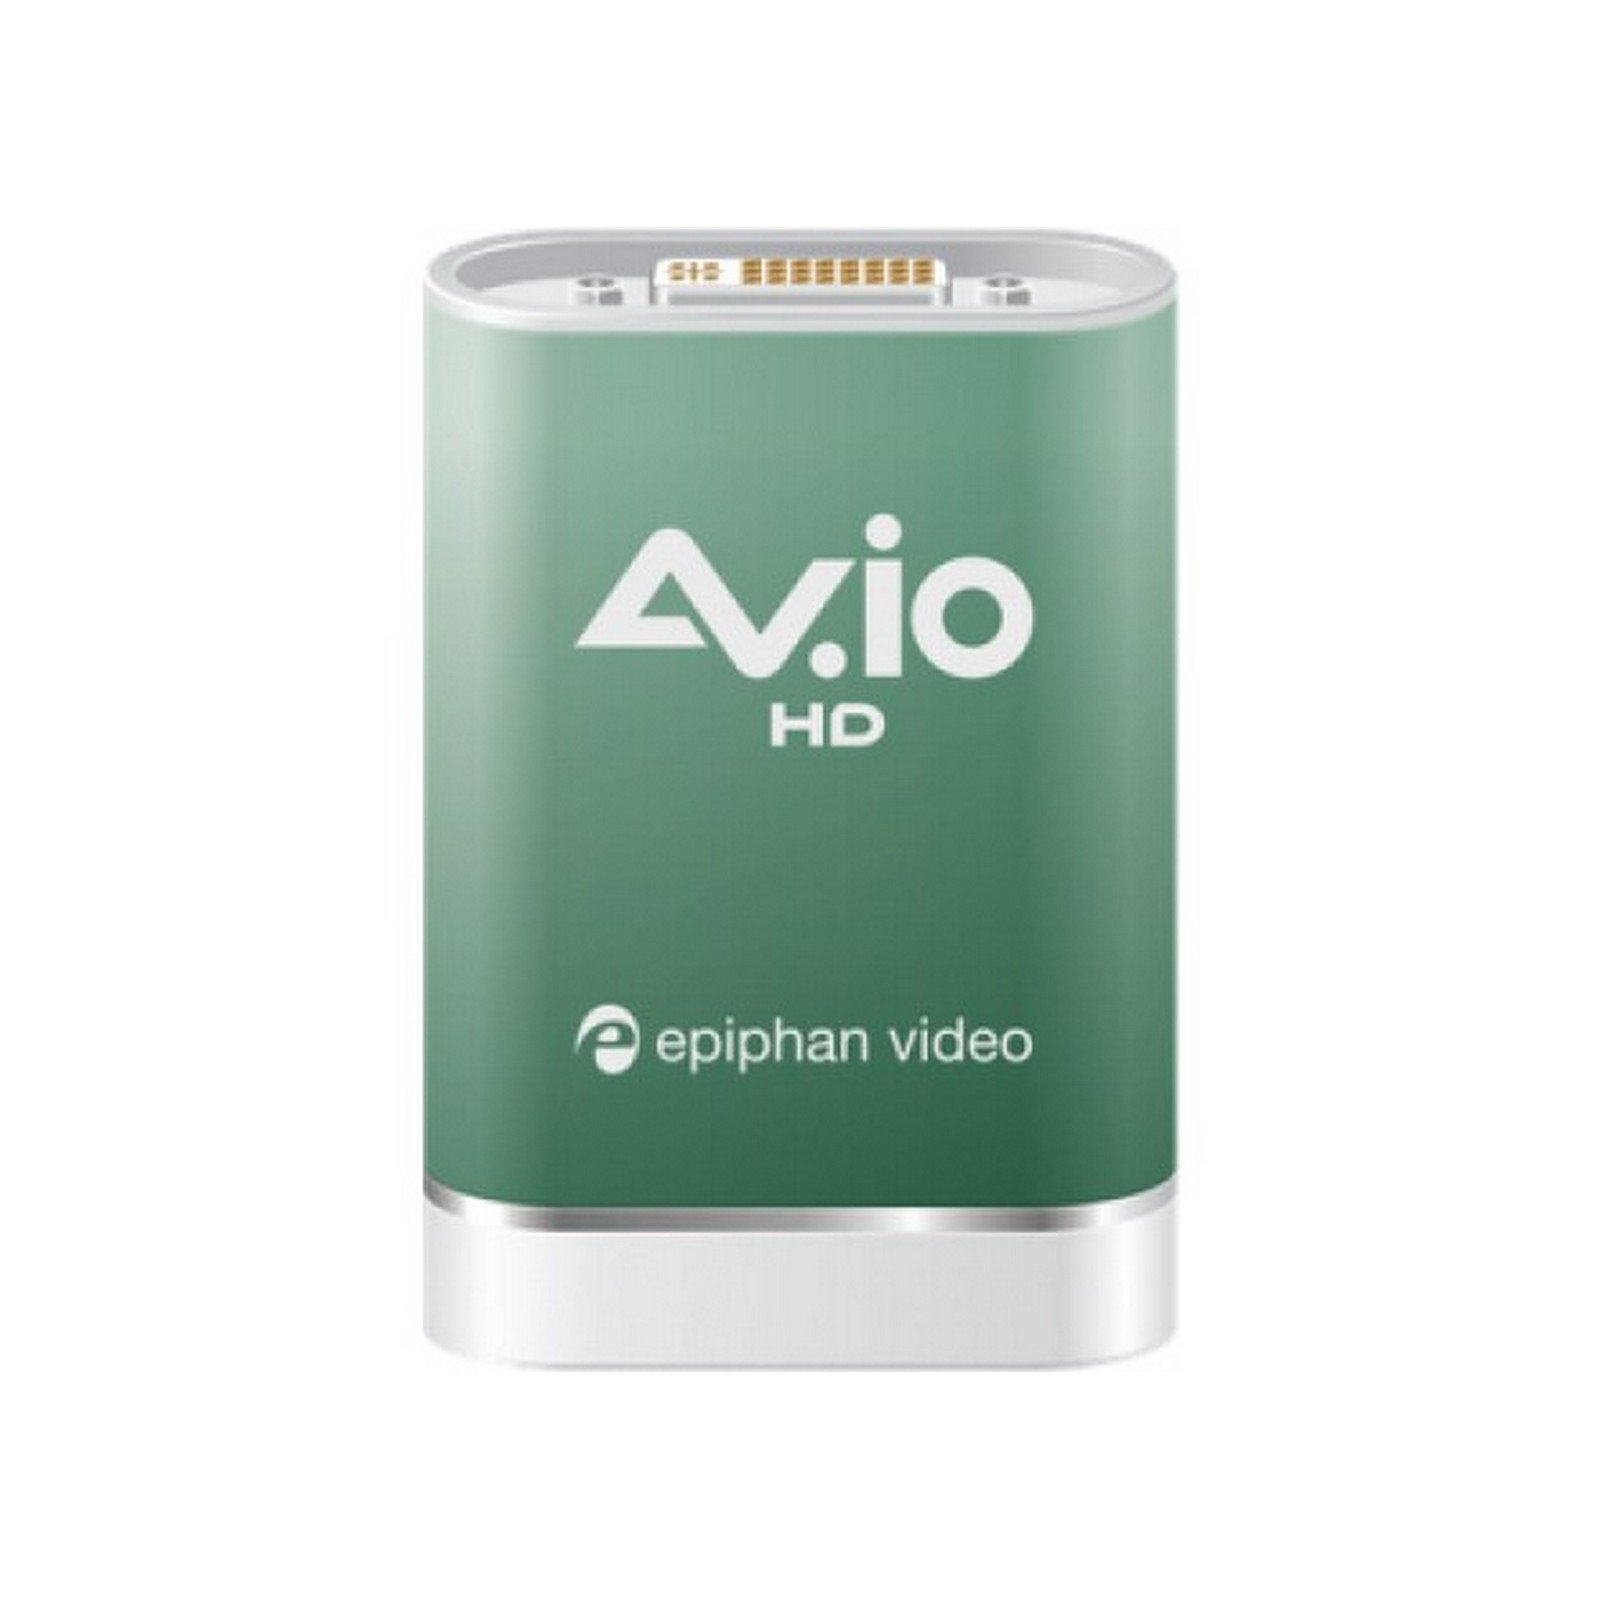 Epiphan AV.io HD | 1080p 60 FPS HDMI Video Capture Device by Epiphan